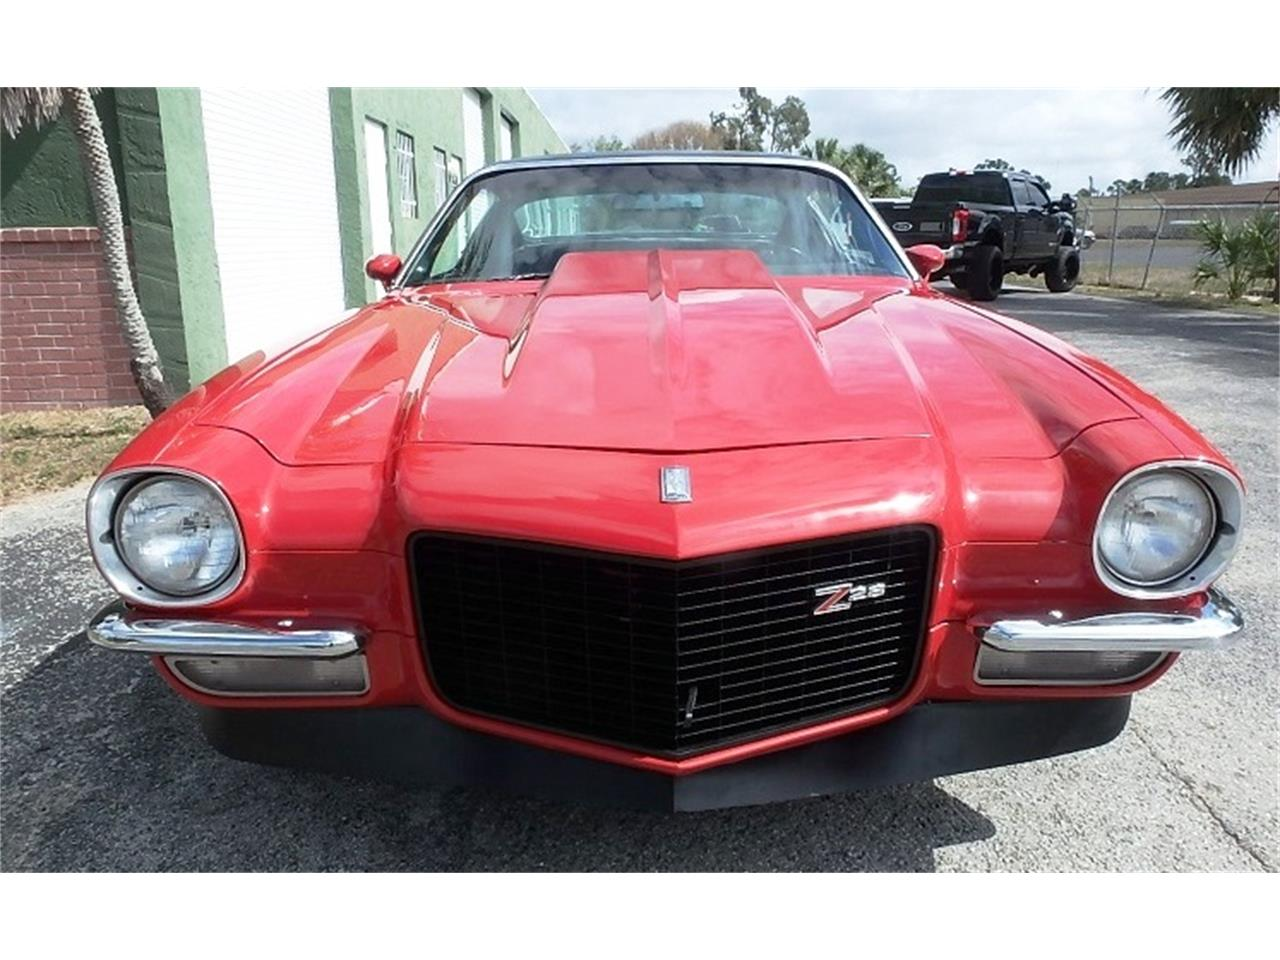 Large Picture of 1970 Camaro located in POMPANO BEACH Florida Offered by Cool Cars - NAPL